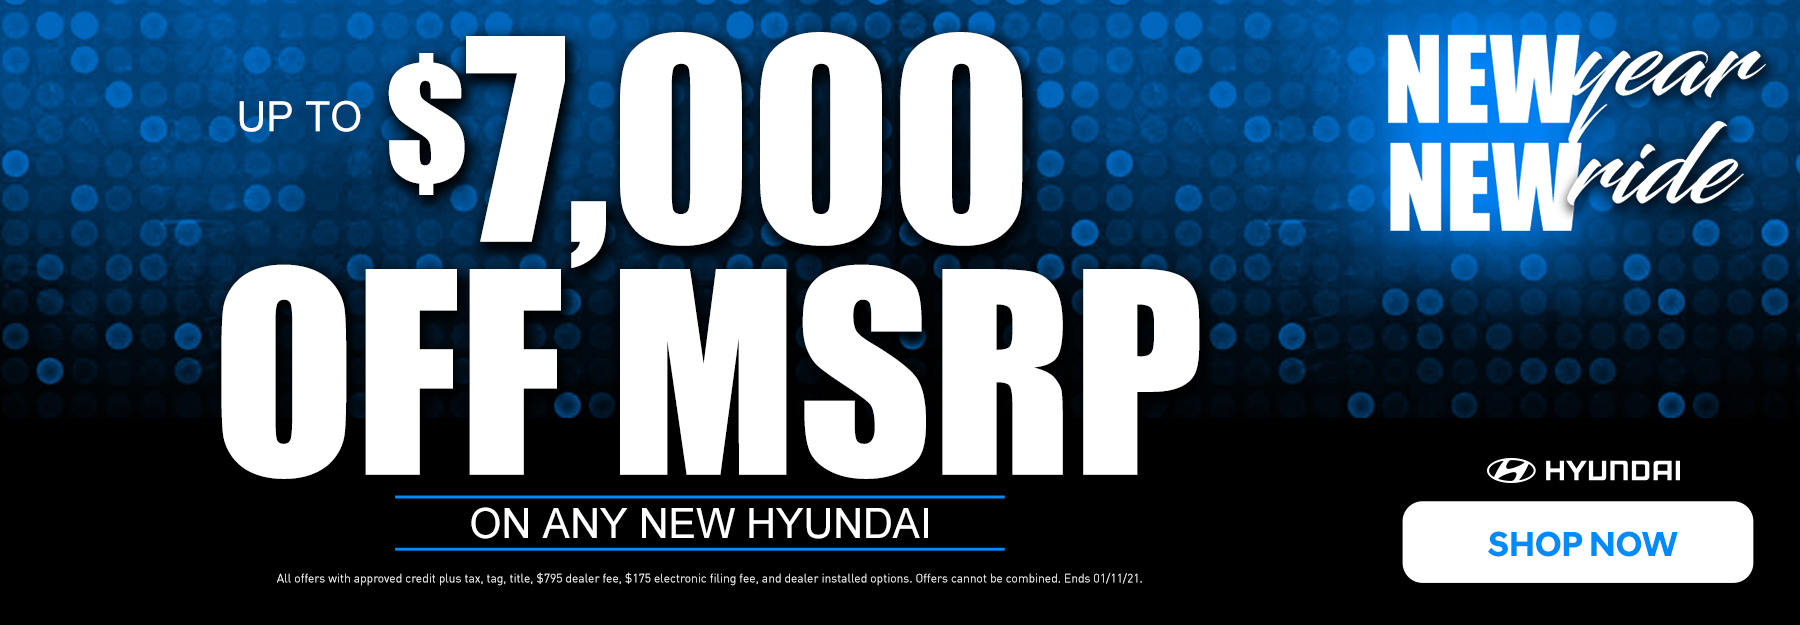 up to $7000 off MSRP